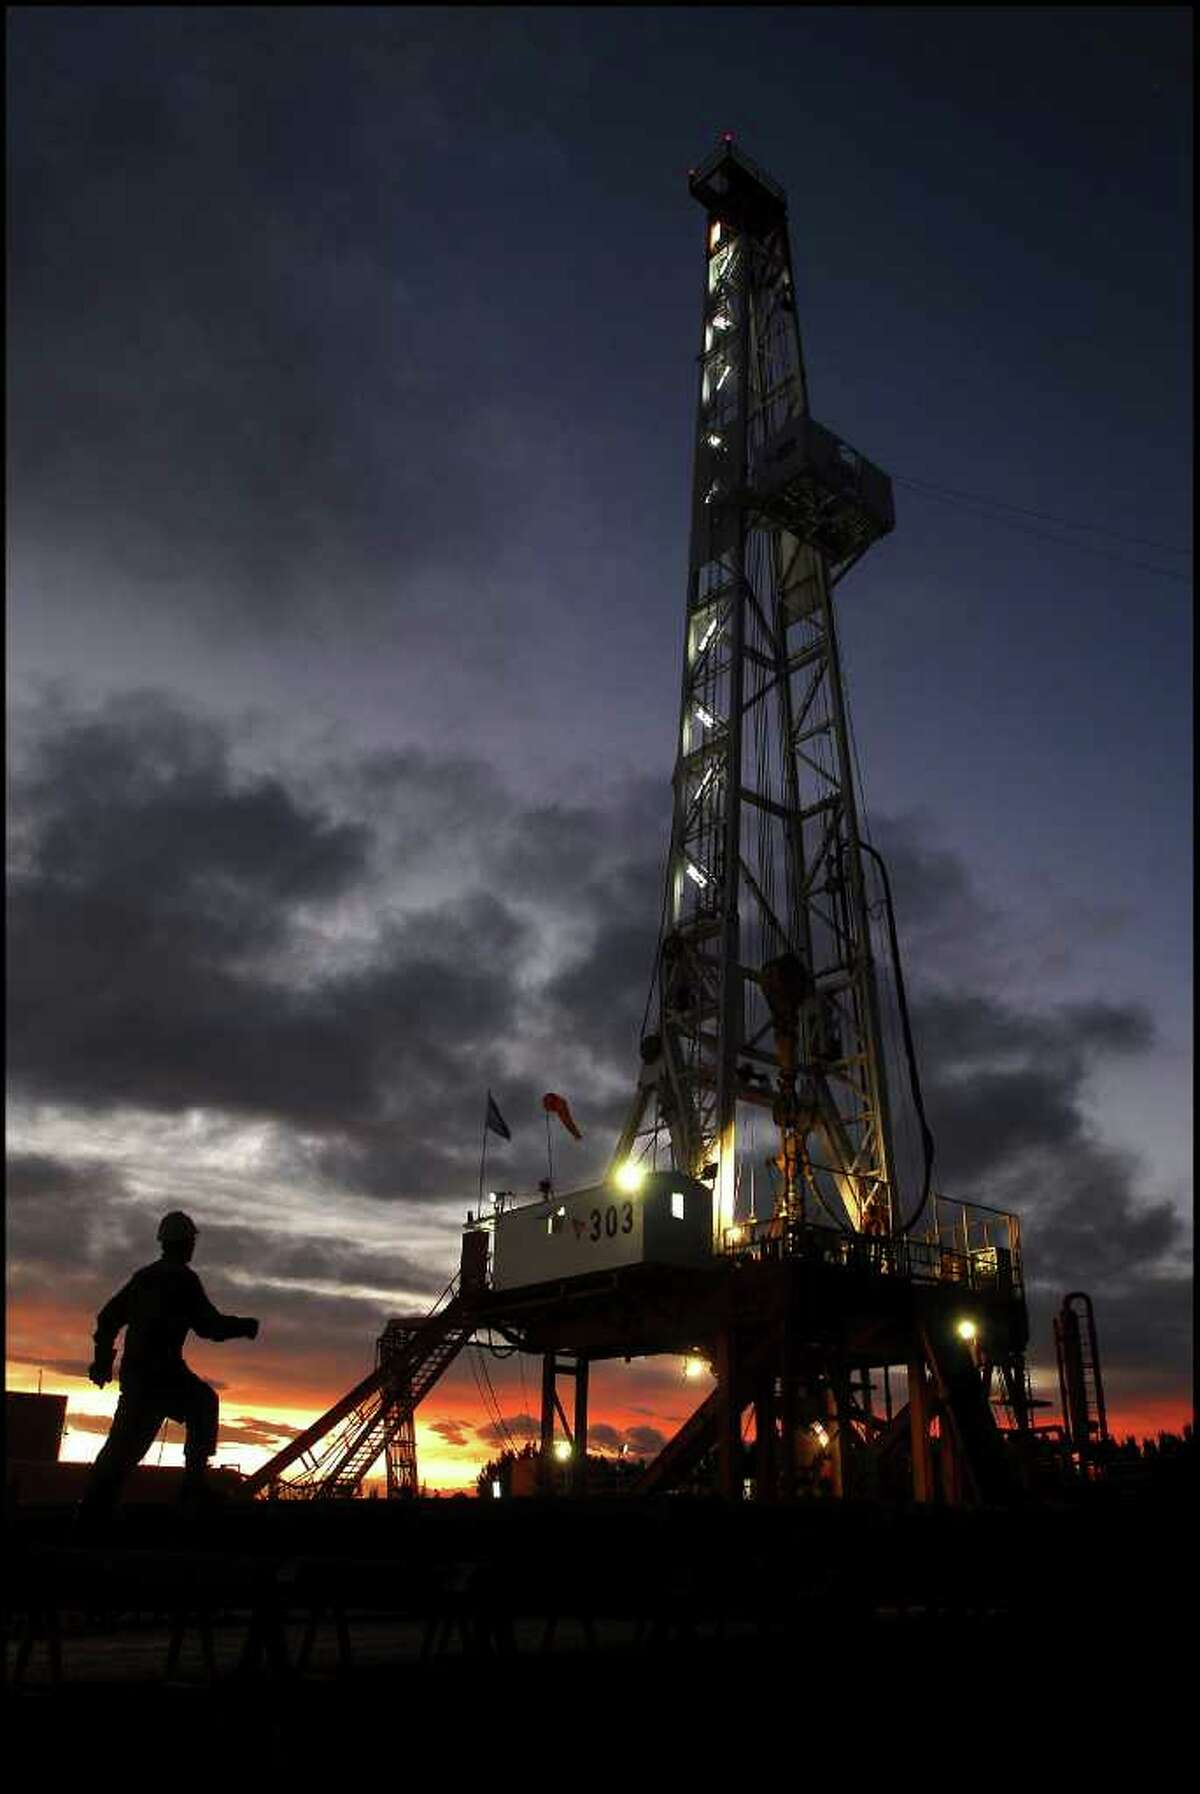 In this picture taken Nov. 26, 2009, an oil worker walks toward an oil drill in the province of Neuquen, Argentina. Argentina is promoting a new era of mining and energy production, welcoming billions of dollars in foreign investment to unlock huge new reserves of natural gas, oil, gold, lithium and other metals once thought to be unprofitable or out of reach. But there's one factor threatening this resource boom, something politicians and energy executives rarely mention: Huge amounts of fresh water will be required to extract these resources, in a country where water scarcity has long held back development and 16 percent of households still aren't connected to publicly treated drinking water. (AP Photo/Leonardo Petricio)